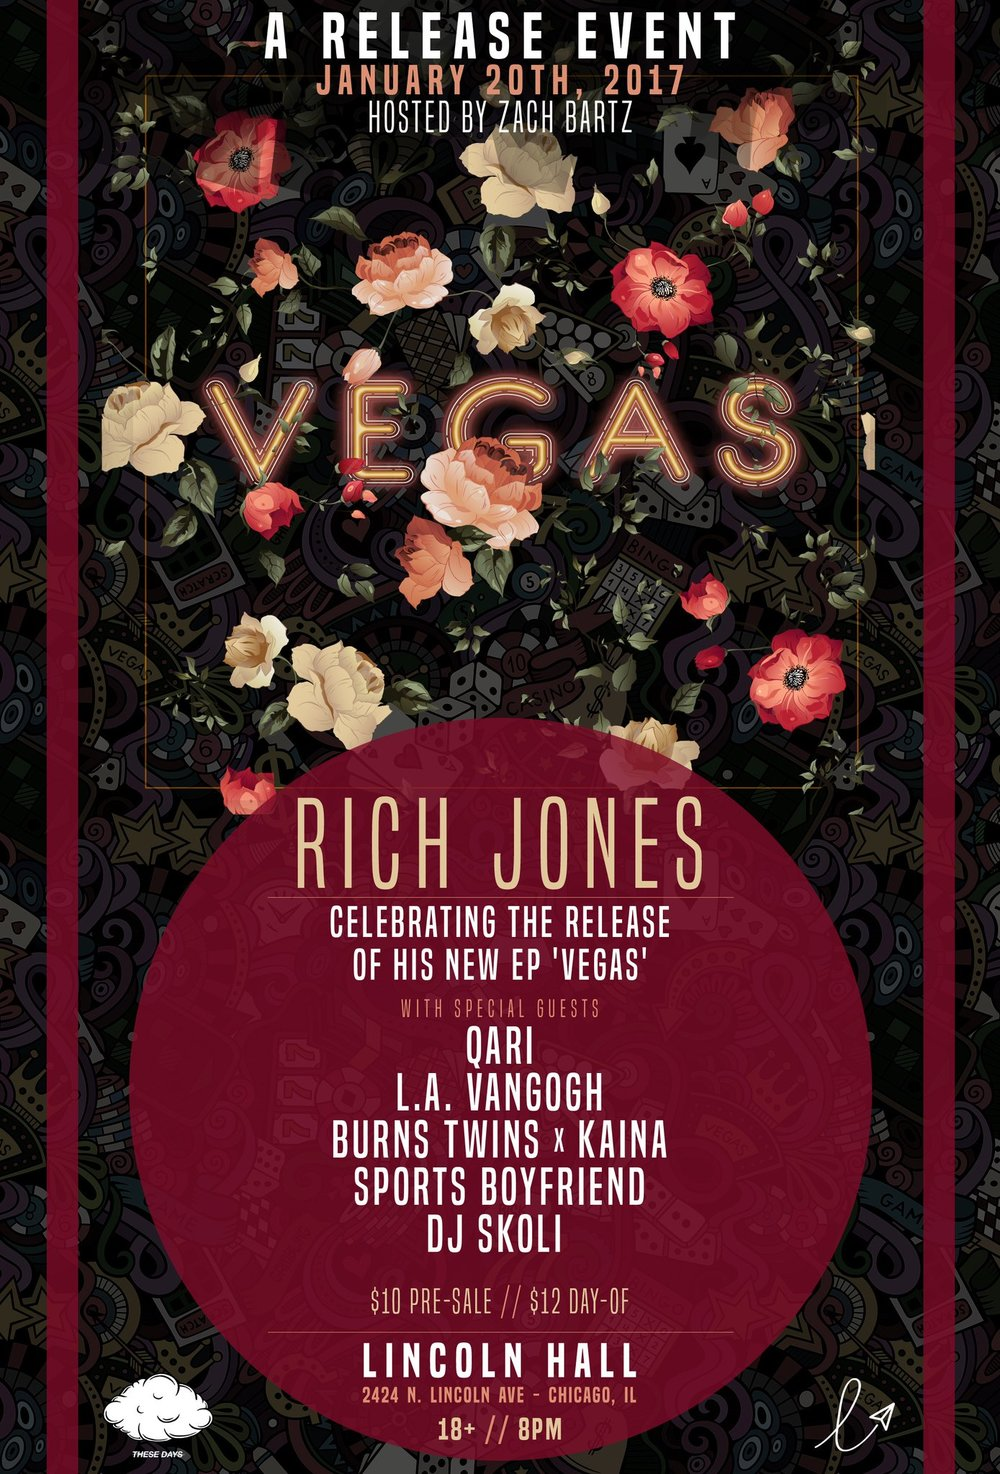 Jan. 20: Rich Jones With Qari, L.A. VanGogh, Burns Twins X Kaina, Sports Boyfriend FRIDAY, JANUARY 20, 2017 8:00PM  11:30PM LINCOLN HALL